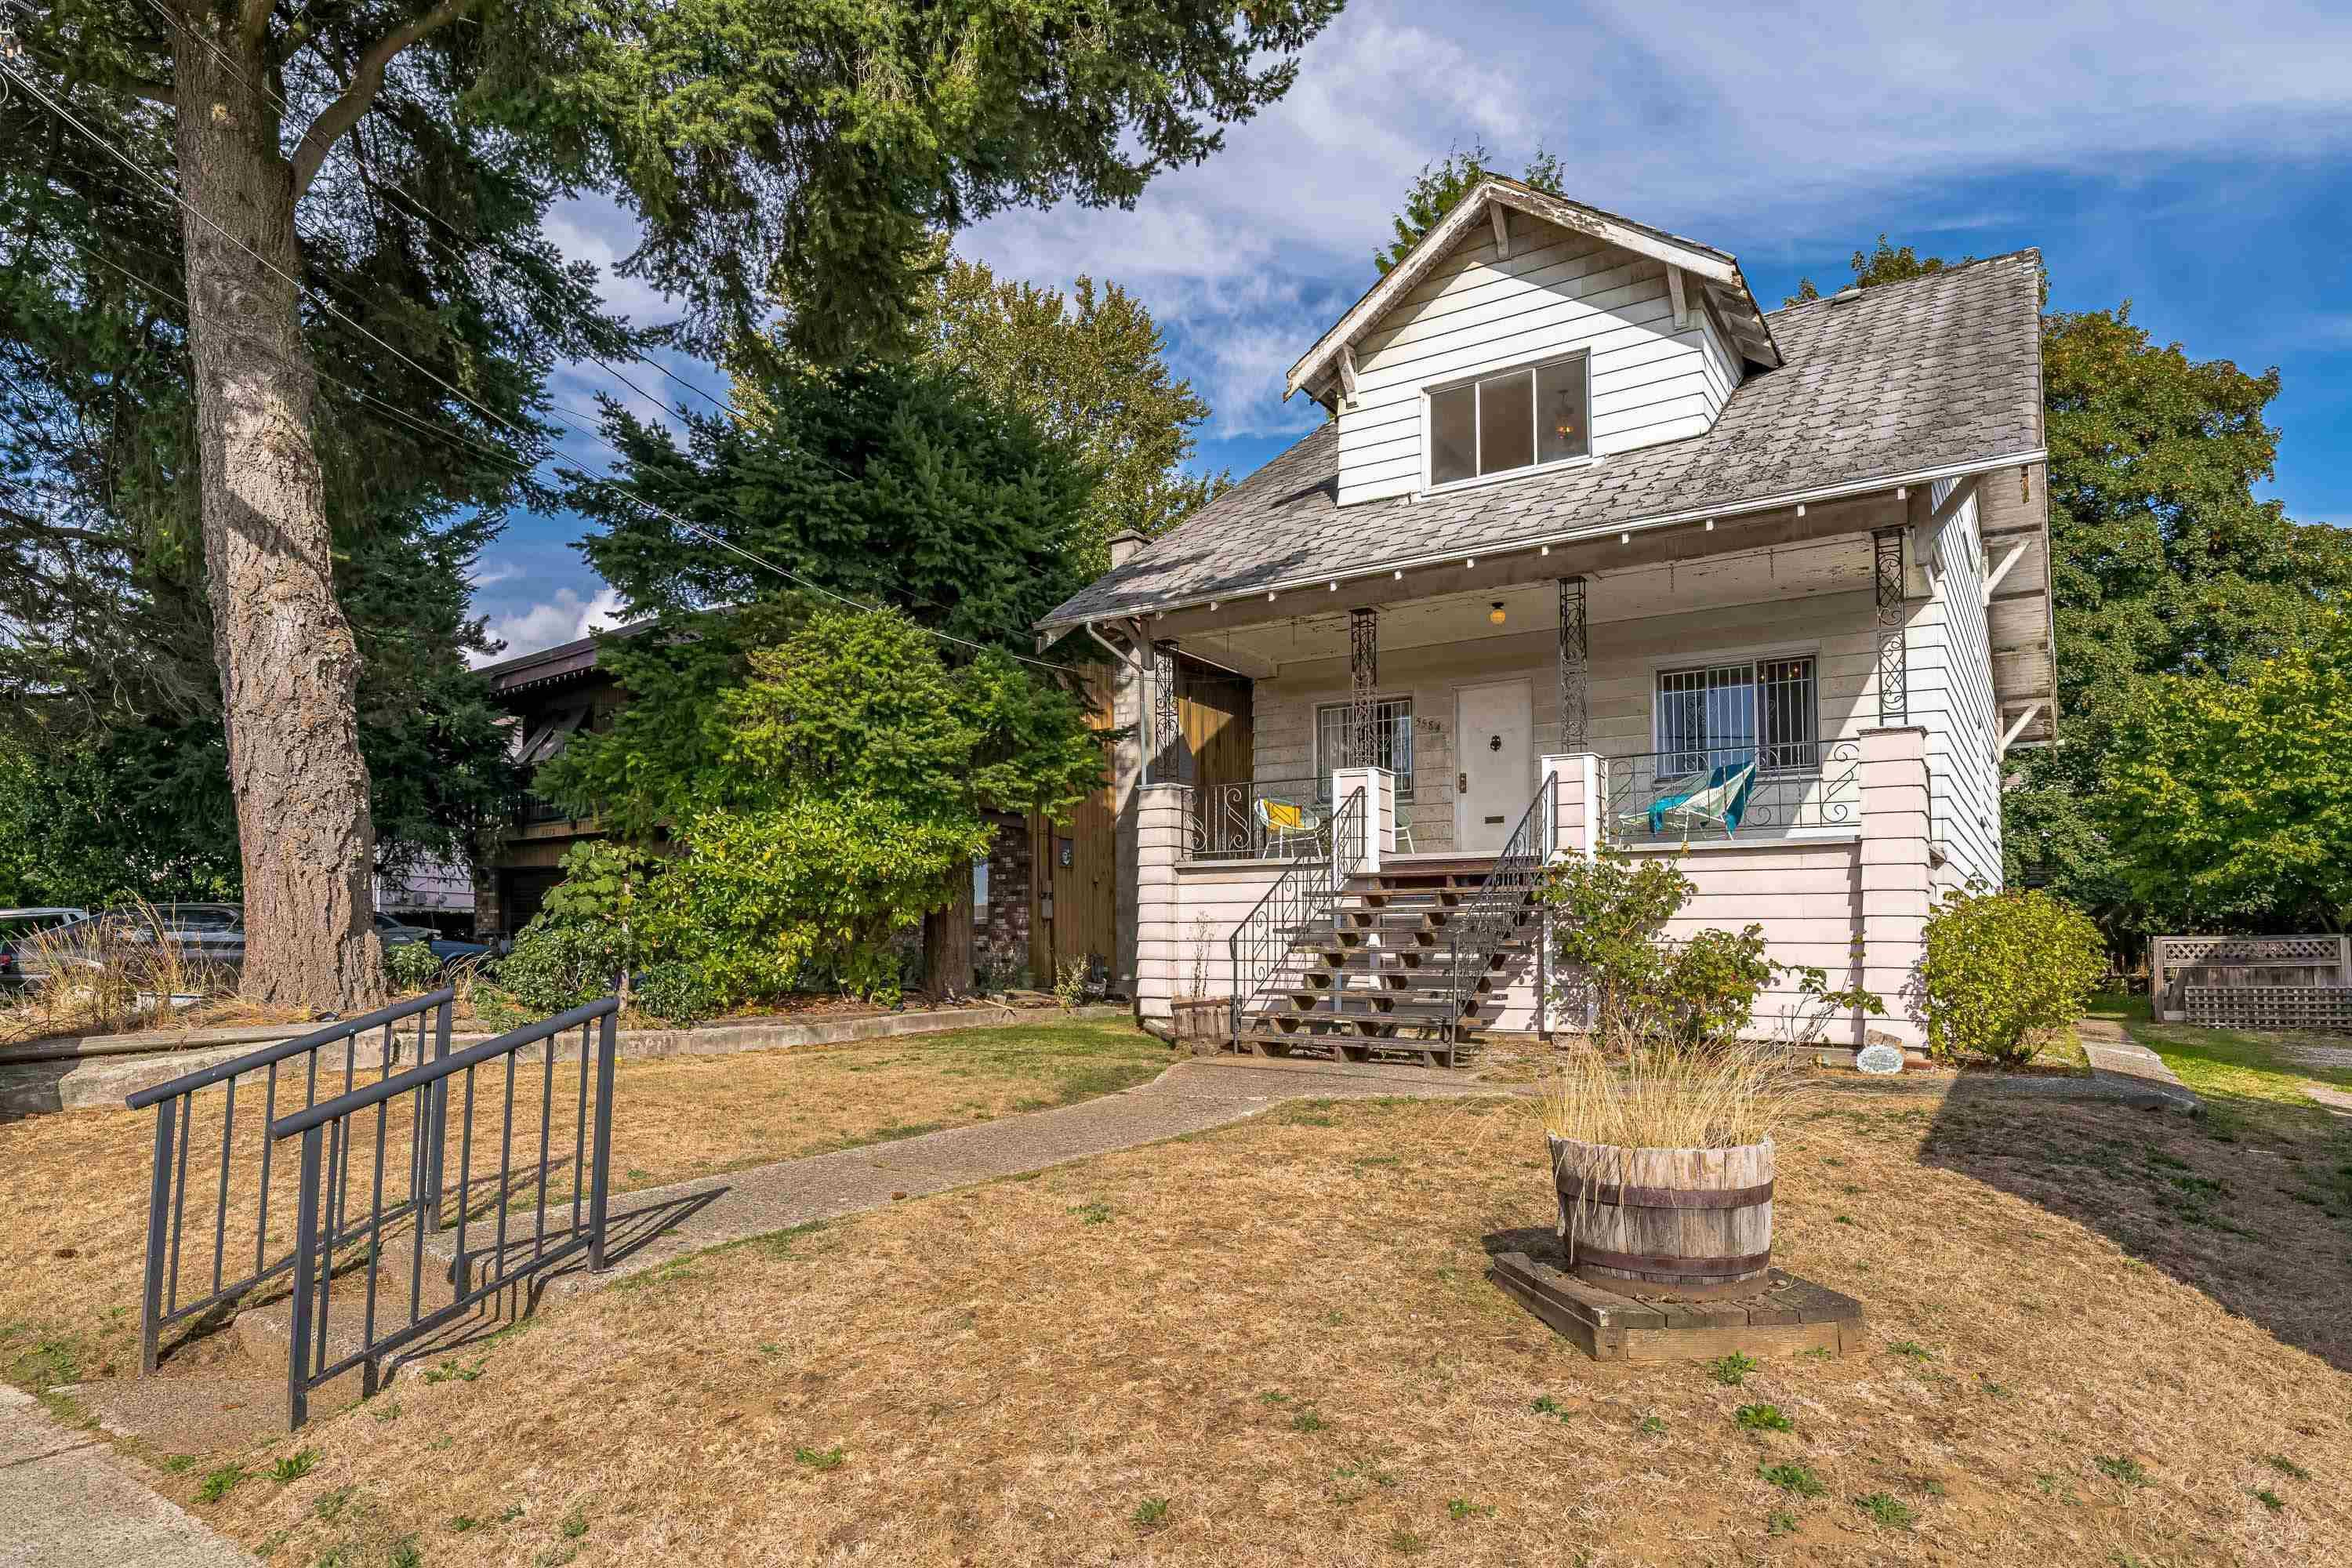 Main Photo: 5584 RUPERT Street in Vancouver: Collingwood VE House for sale (Vancouver East)  : MLS®# R2617436